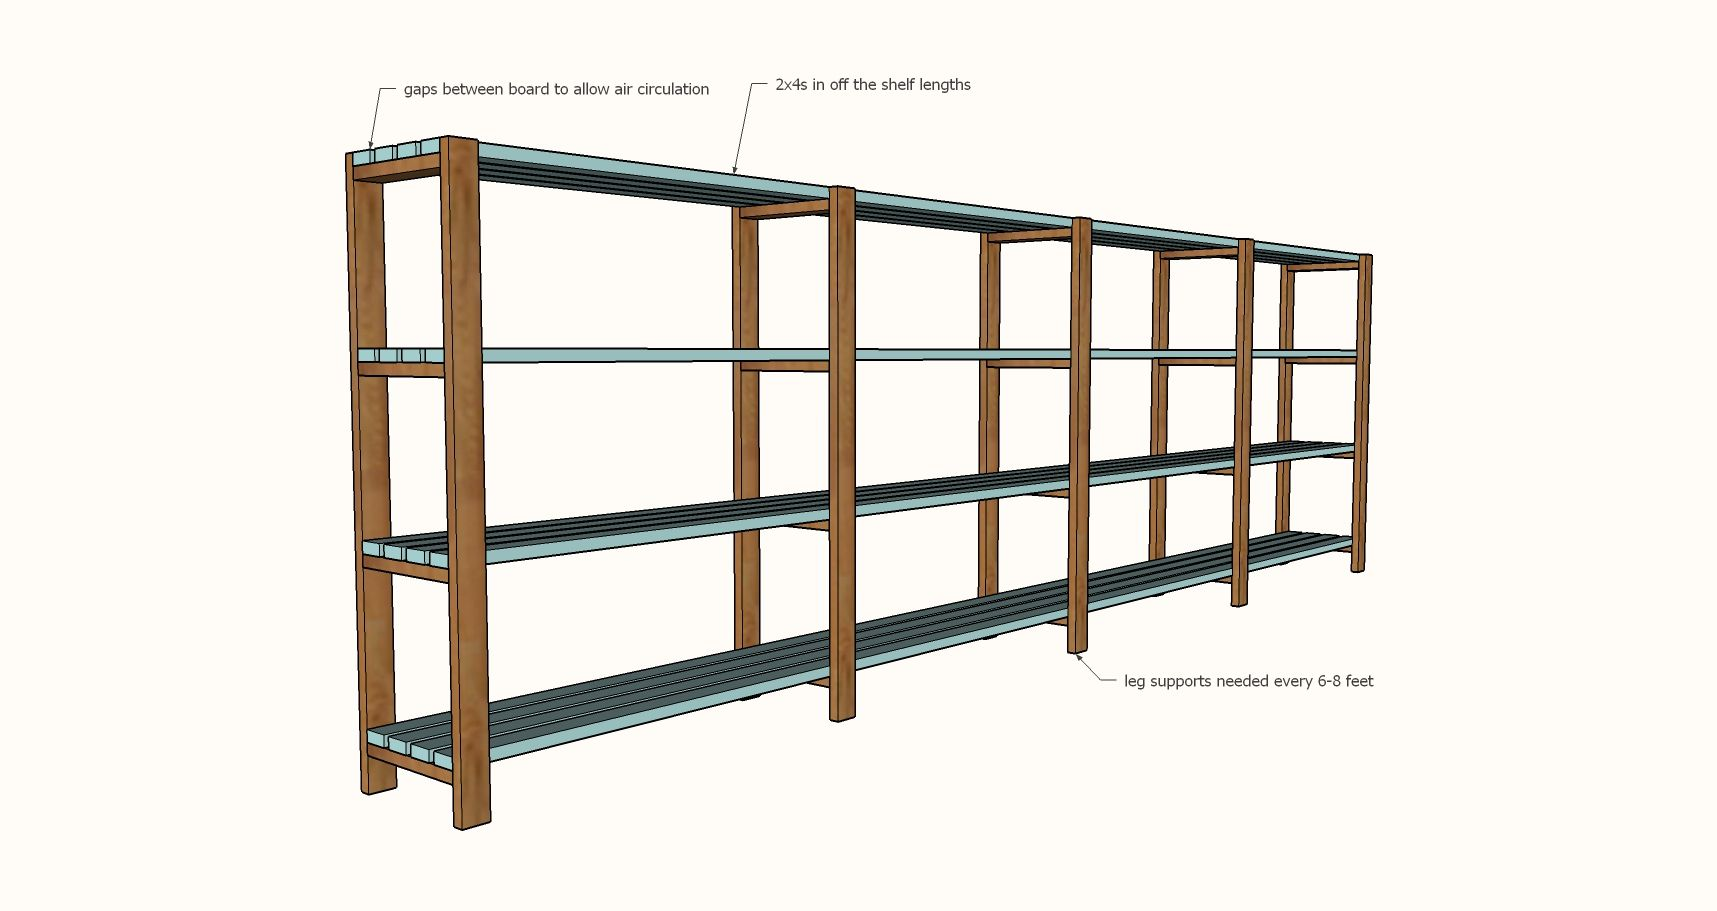 Diy Garage Shelves Freestanding Garage Shelving Diy Garage Storage Diy Garage Shelves